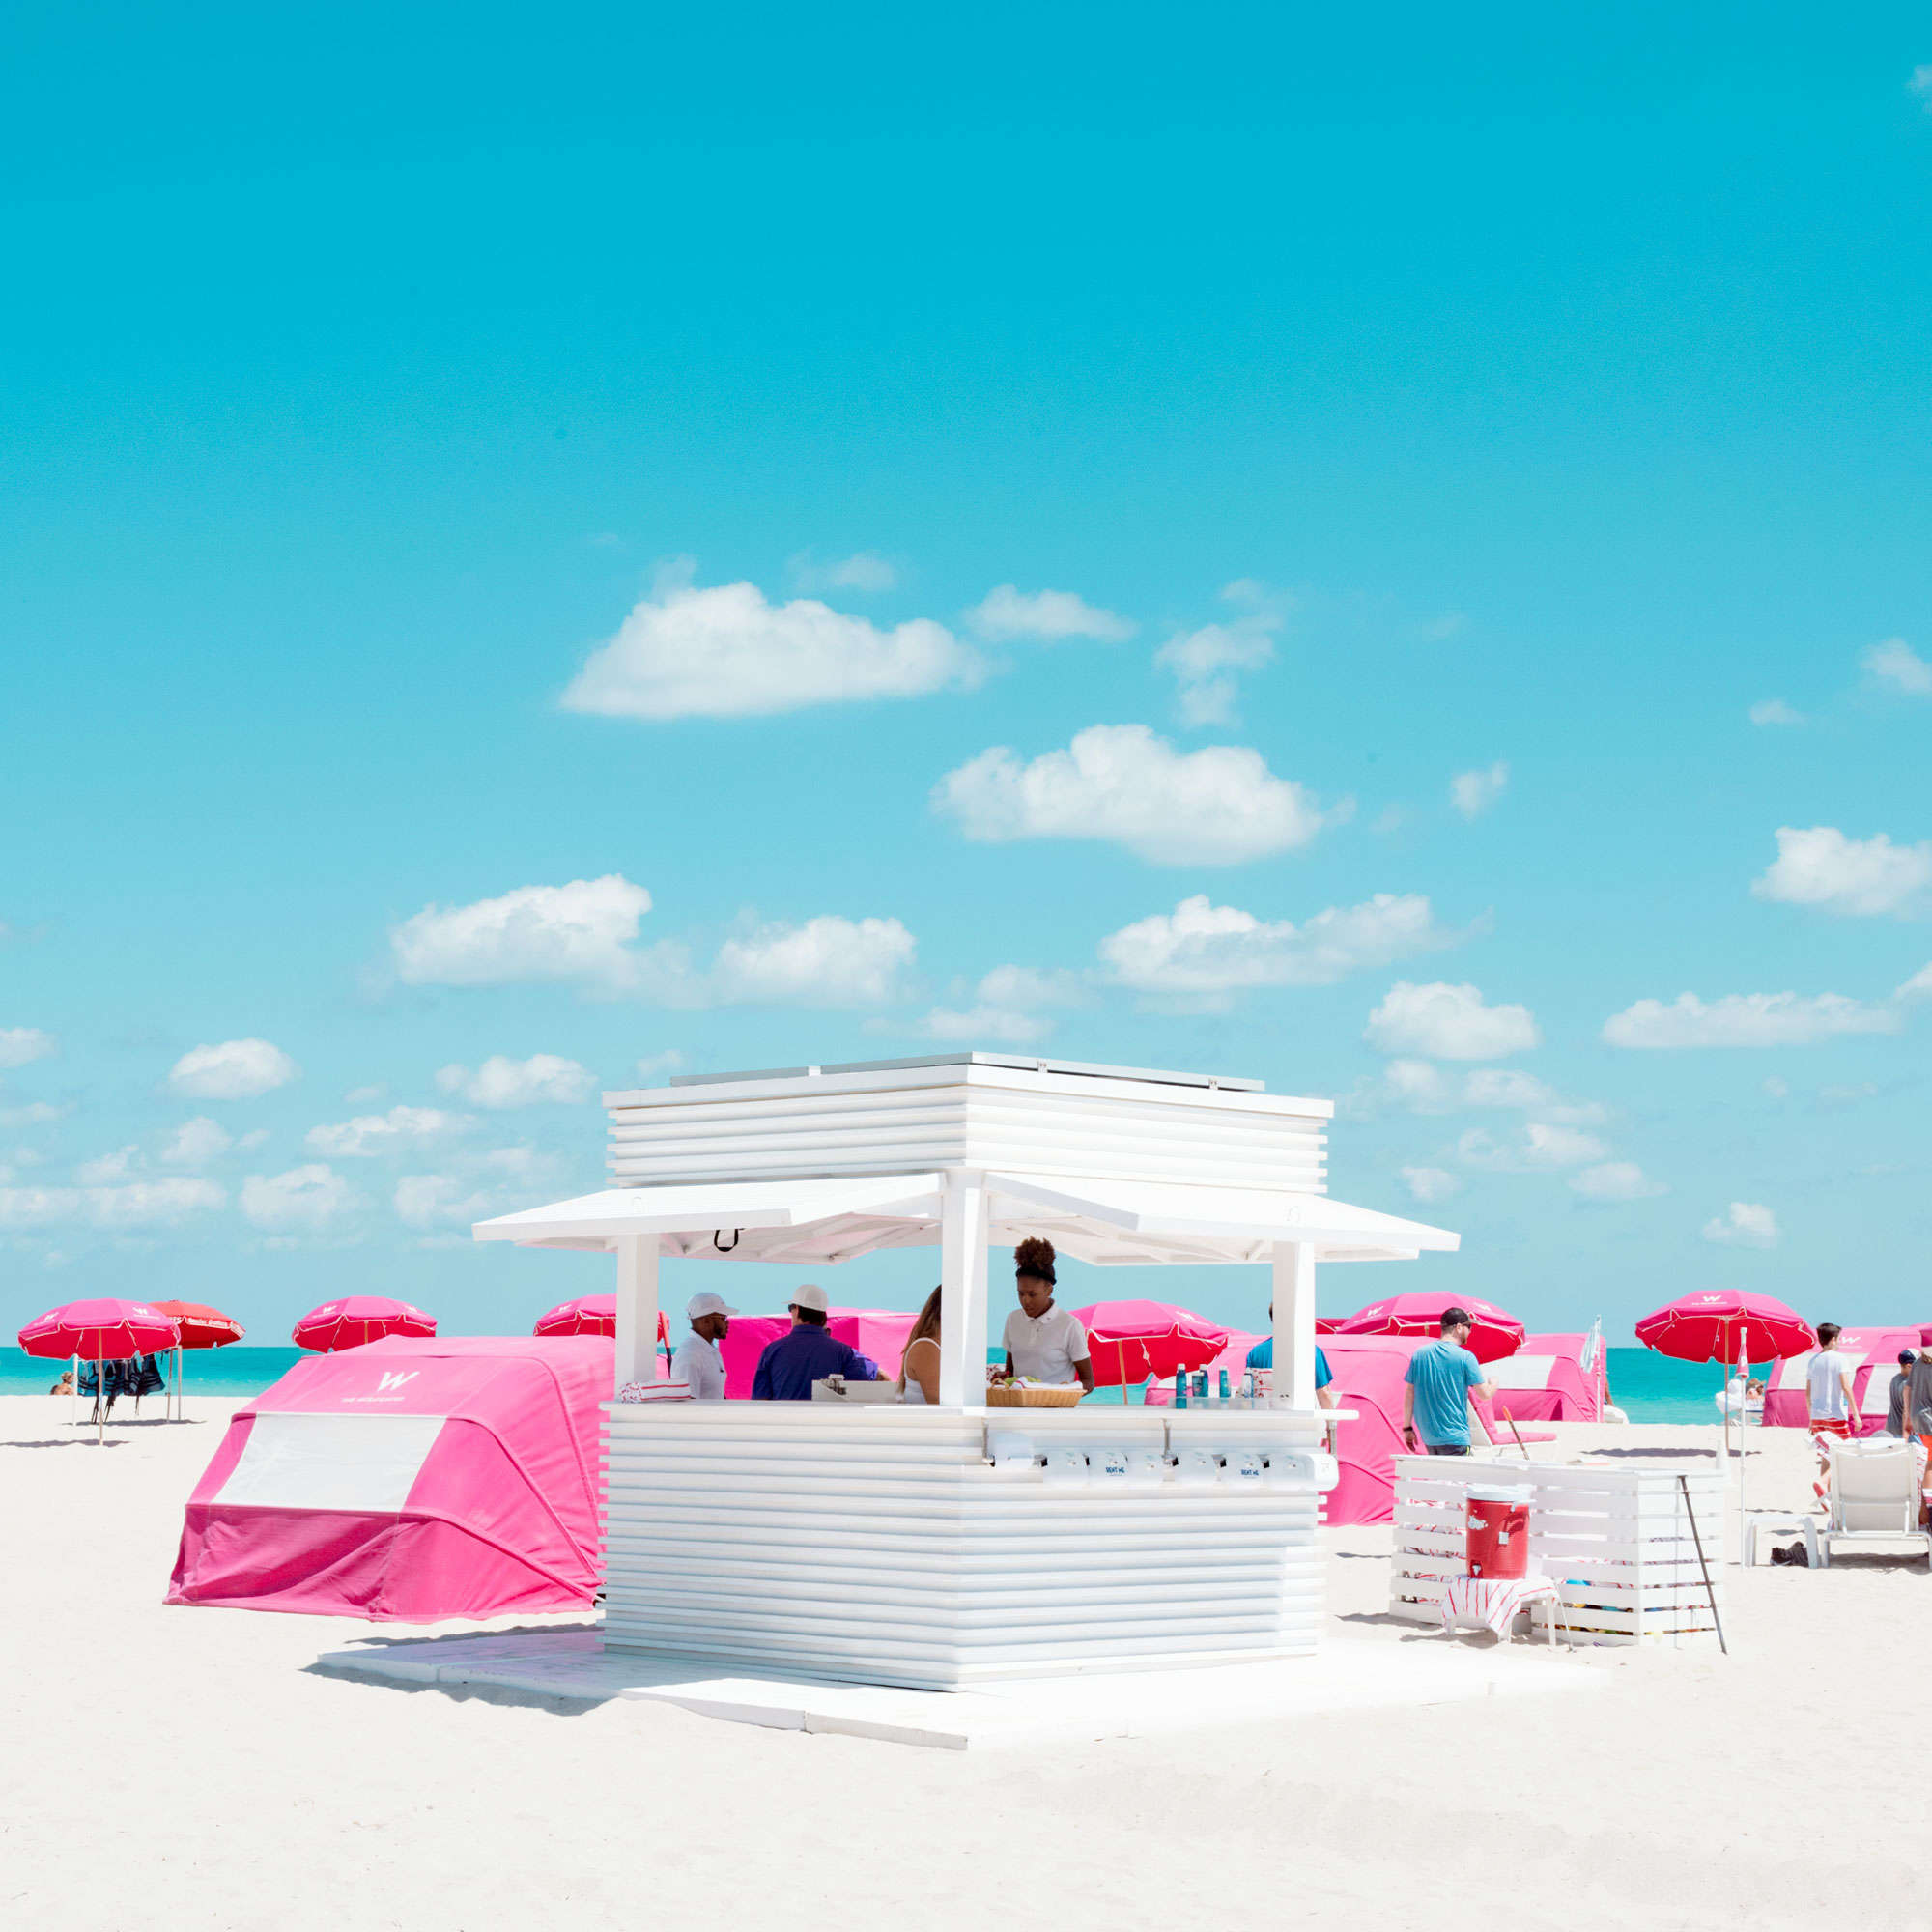 David Behar - Pink and white